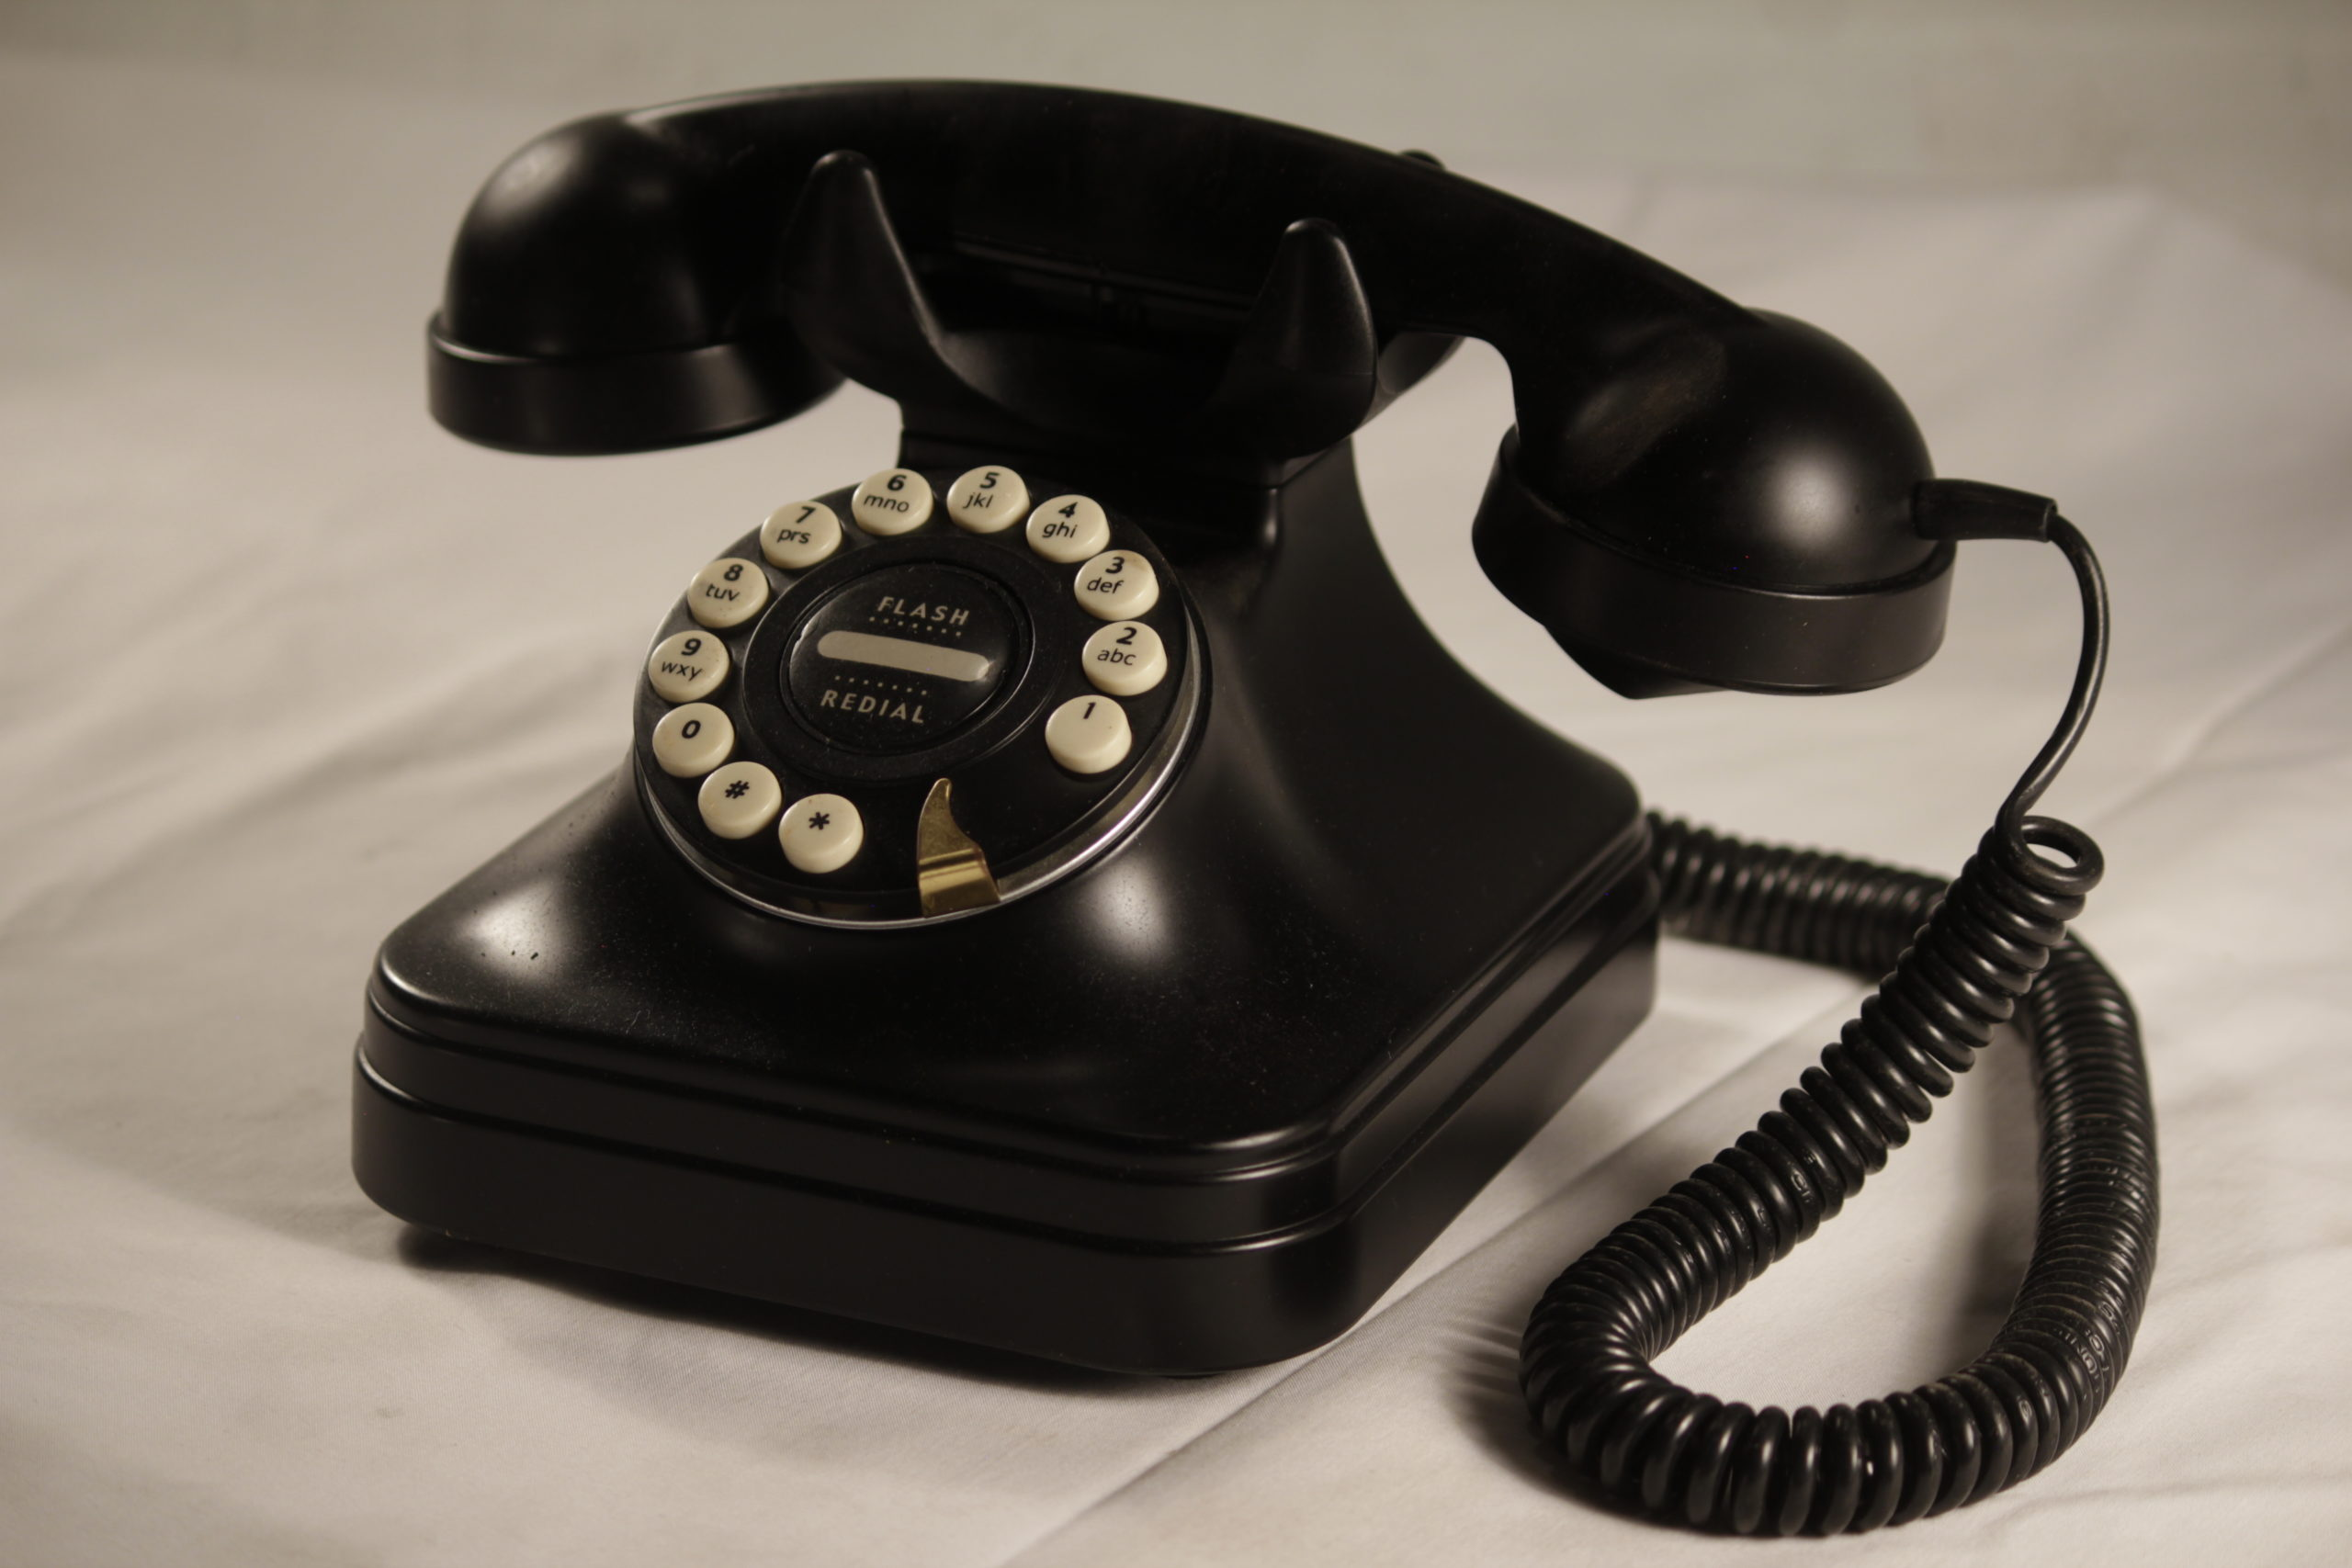 Telephone, vintage black